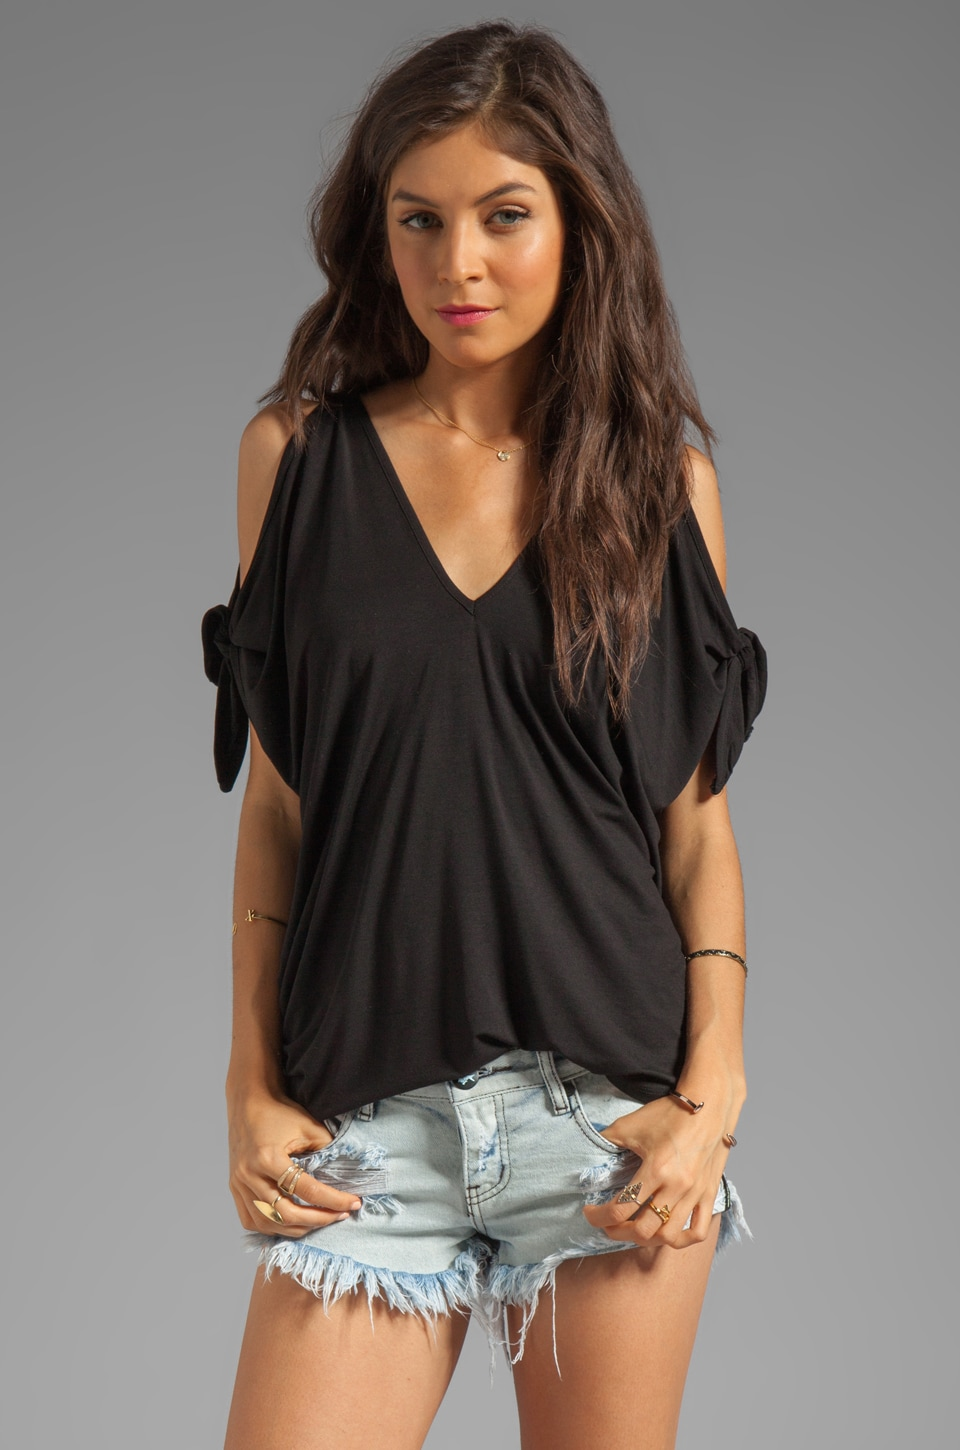 James & Joy Mikki Arm Tie Top in Black